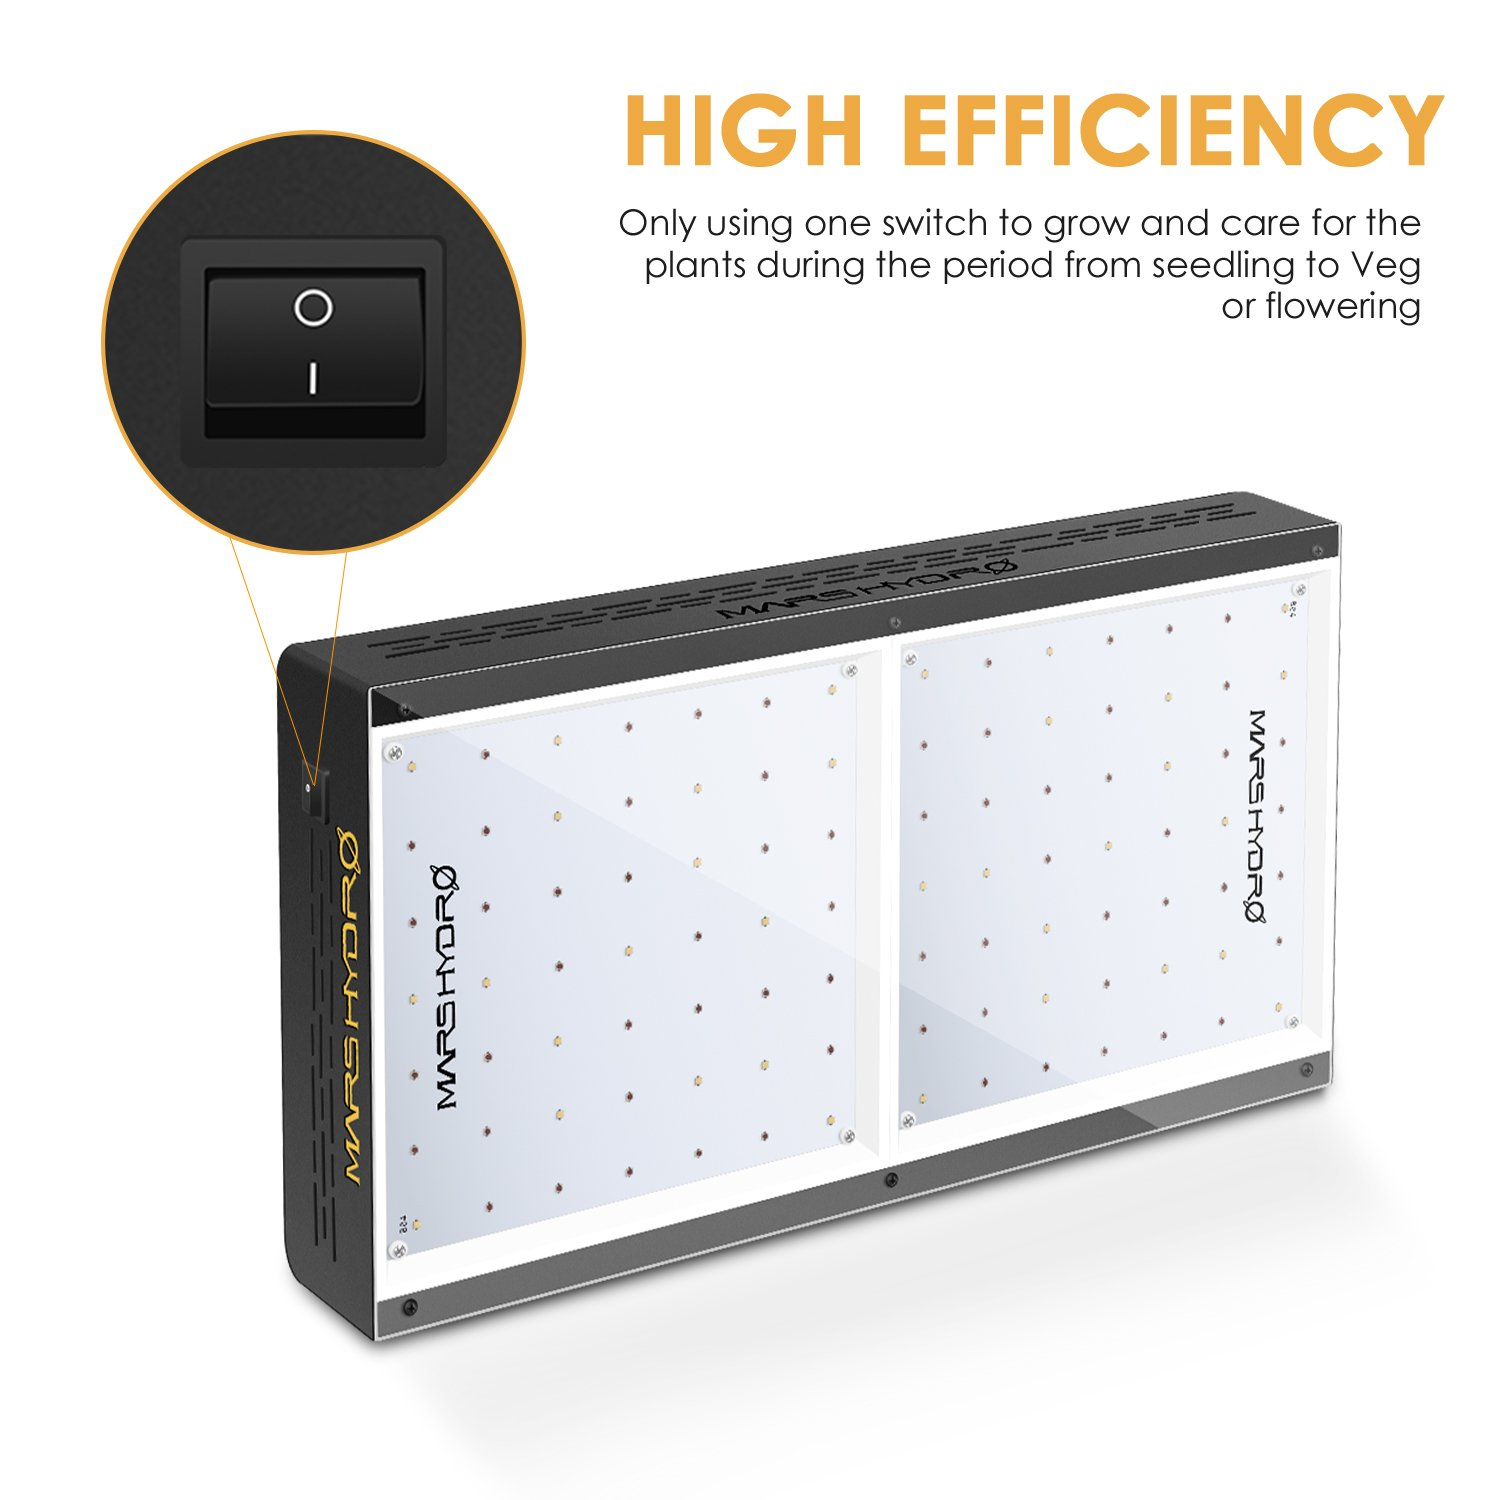 MARS HYDRO 300W 600W LED Grow Light Full Spectrum for Indoor Plants Veg and Flower Hydroponic with Thermometer Hygrometer Hanger Growing Daisy Chain and Switch Cool and Quiet ECO 300W